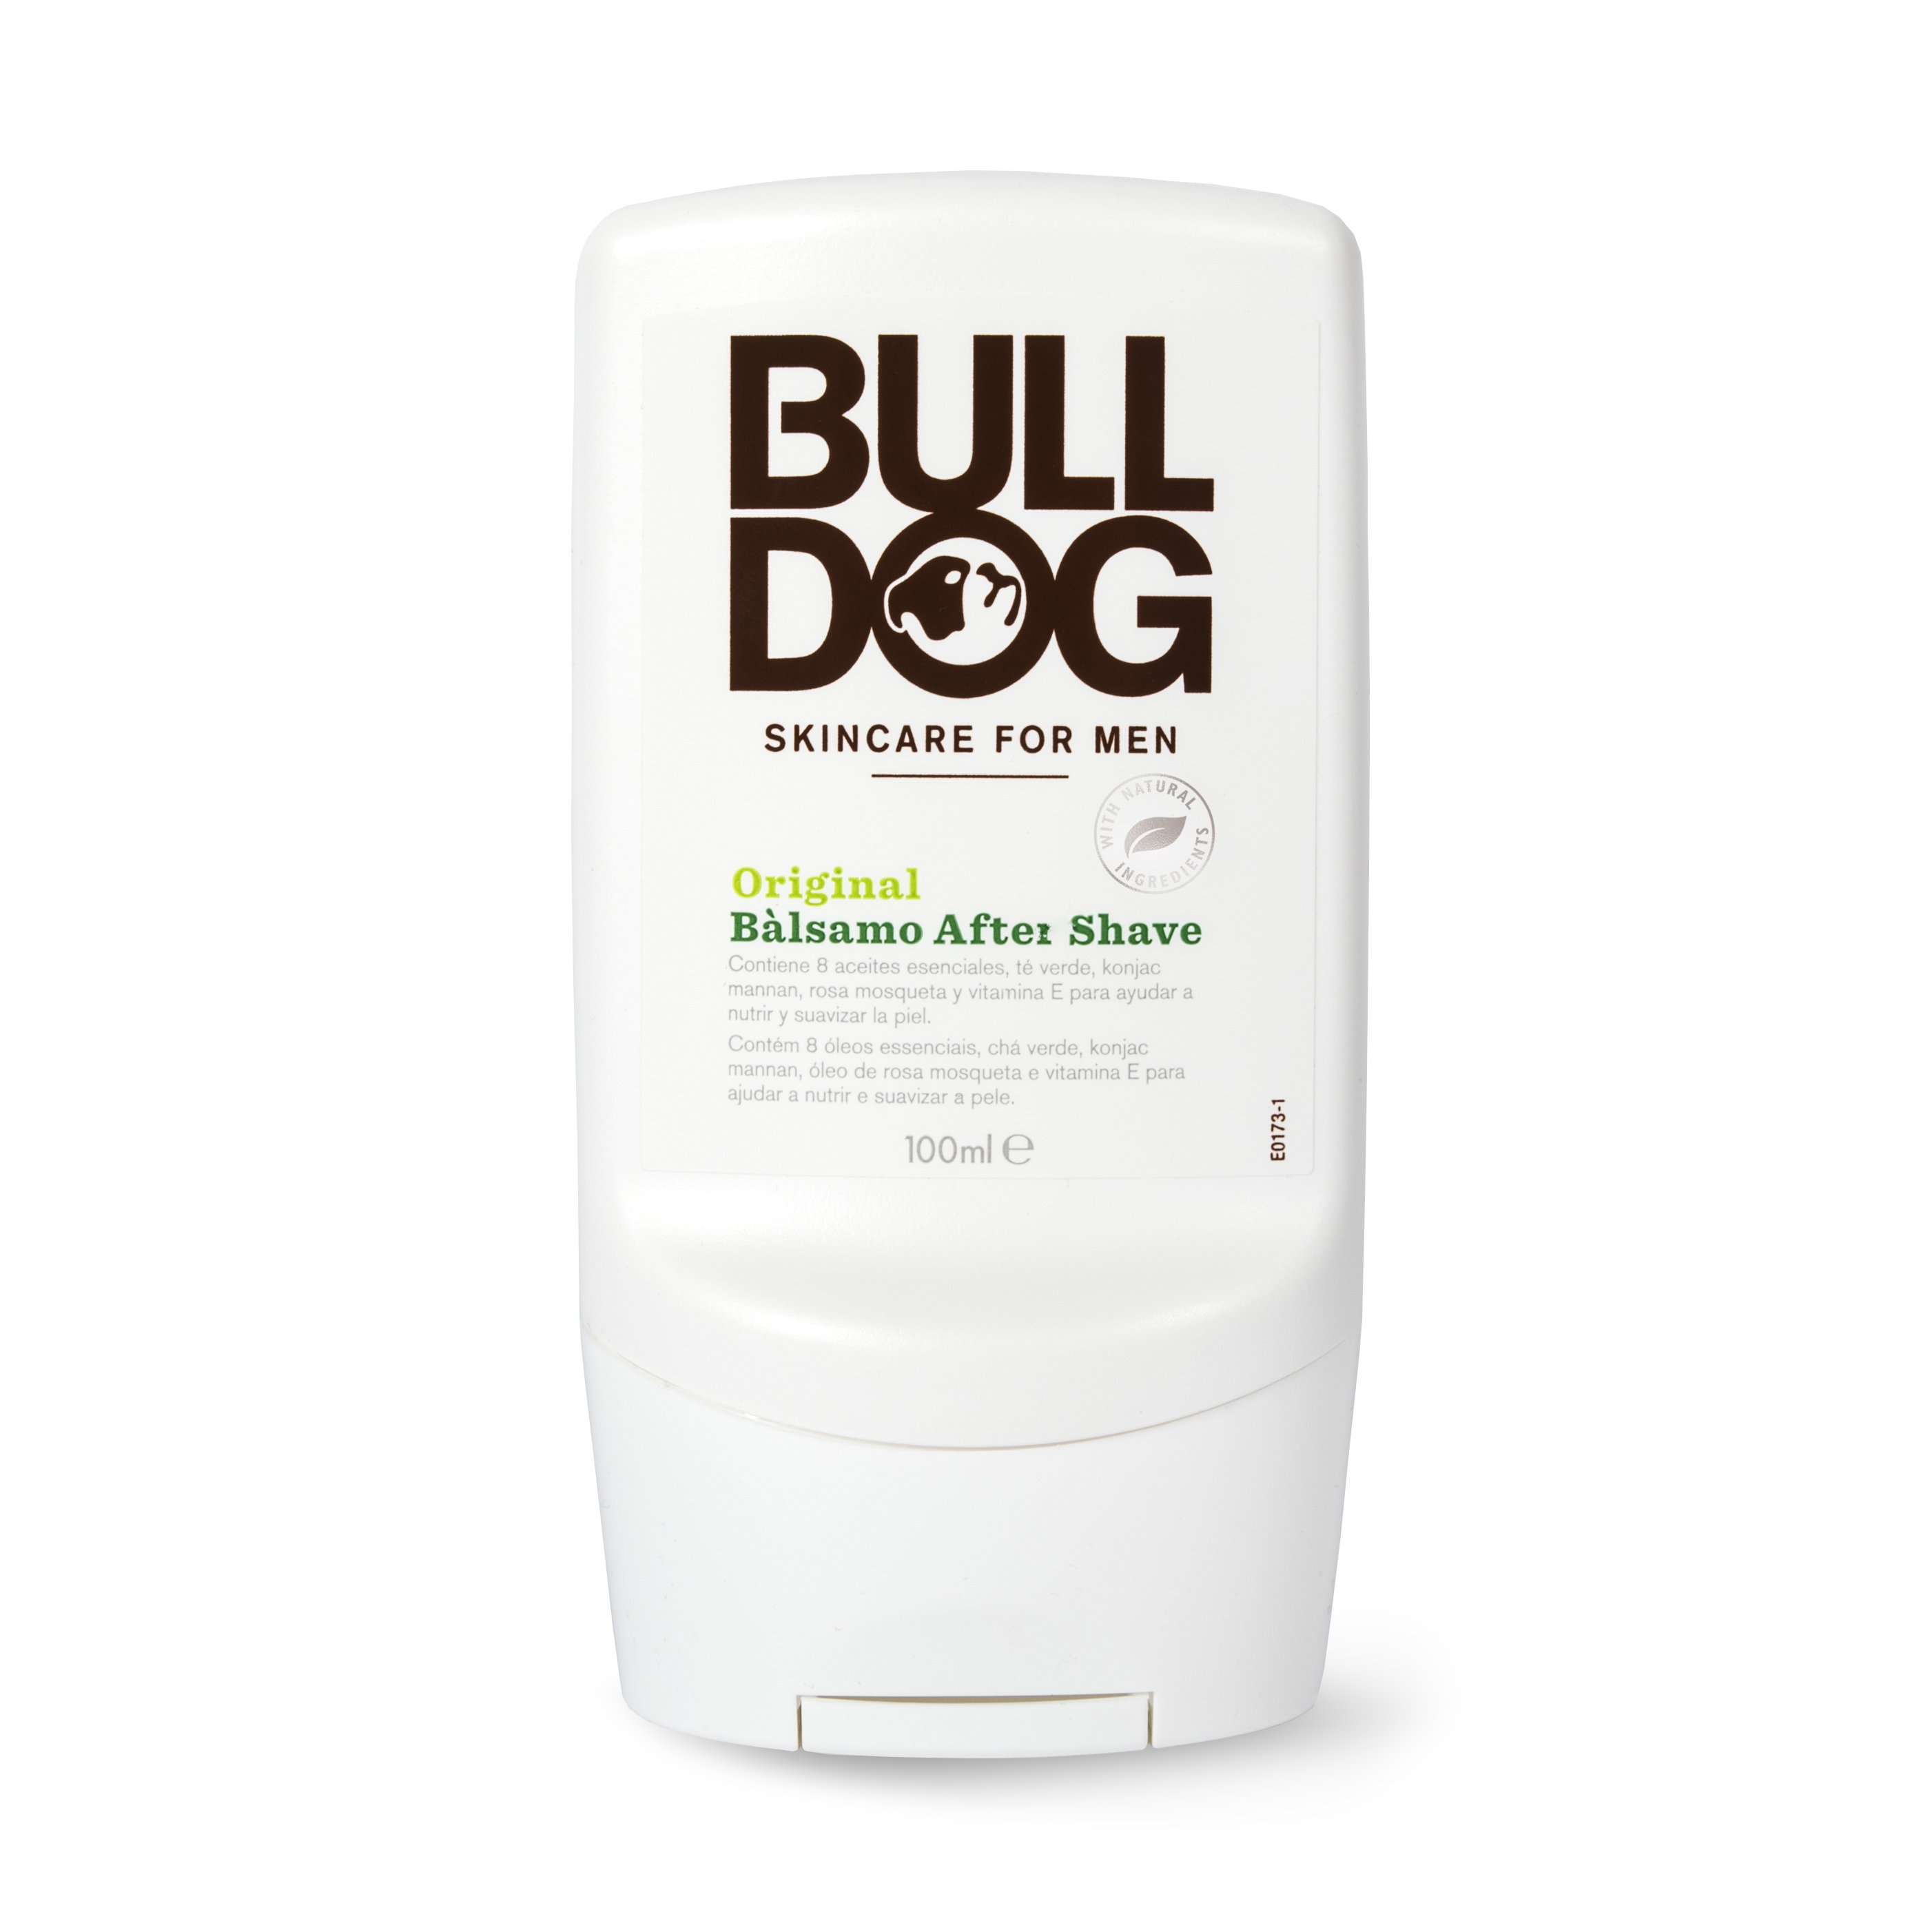 Bulldog%20Original%20After-Shave%20Balm%20100ml.jpg